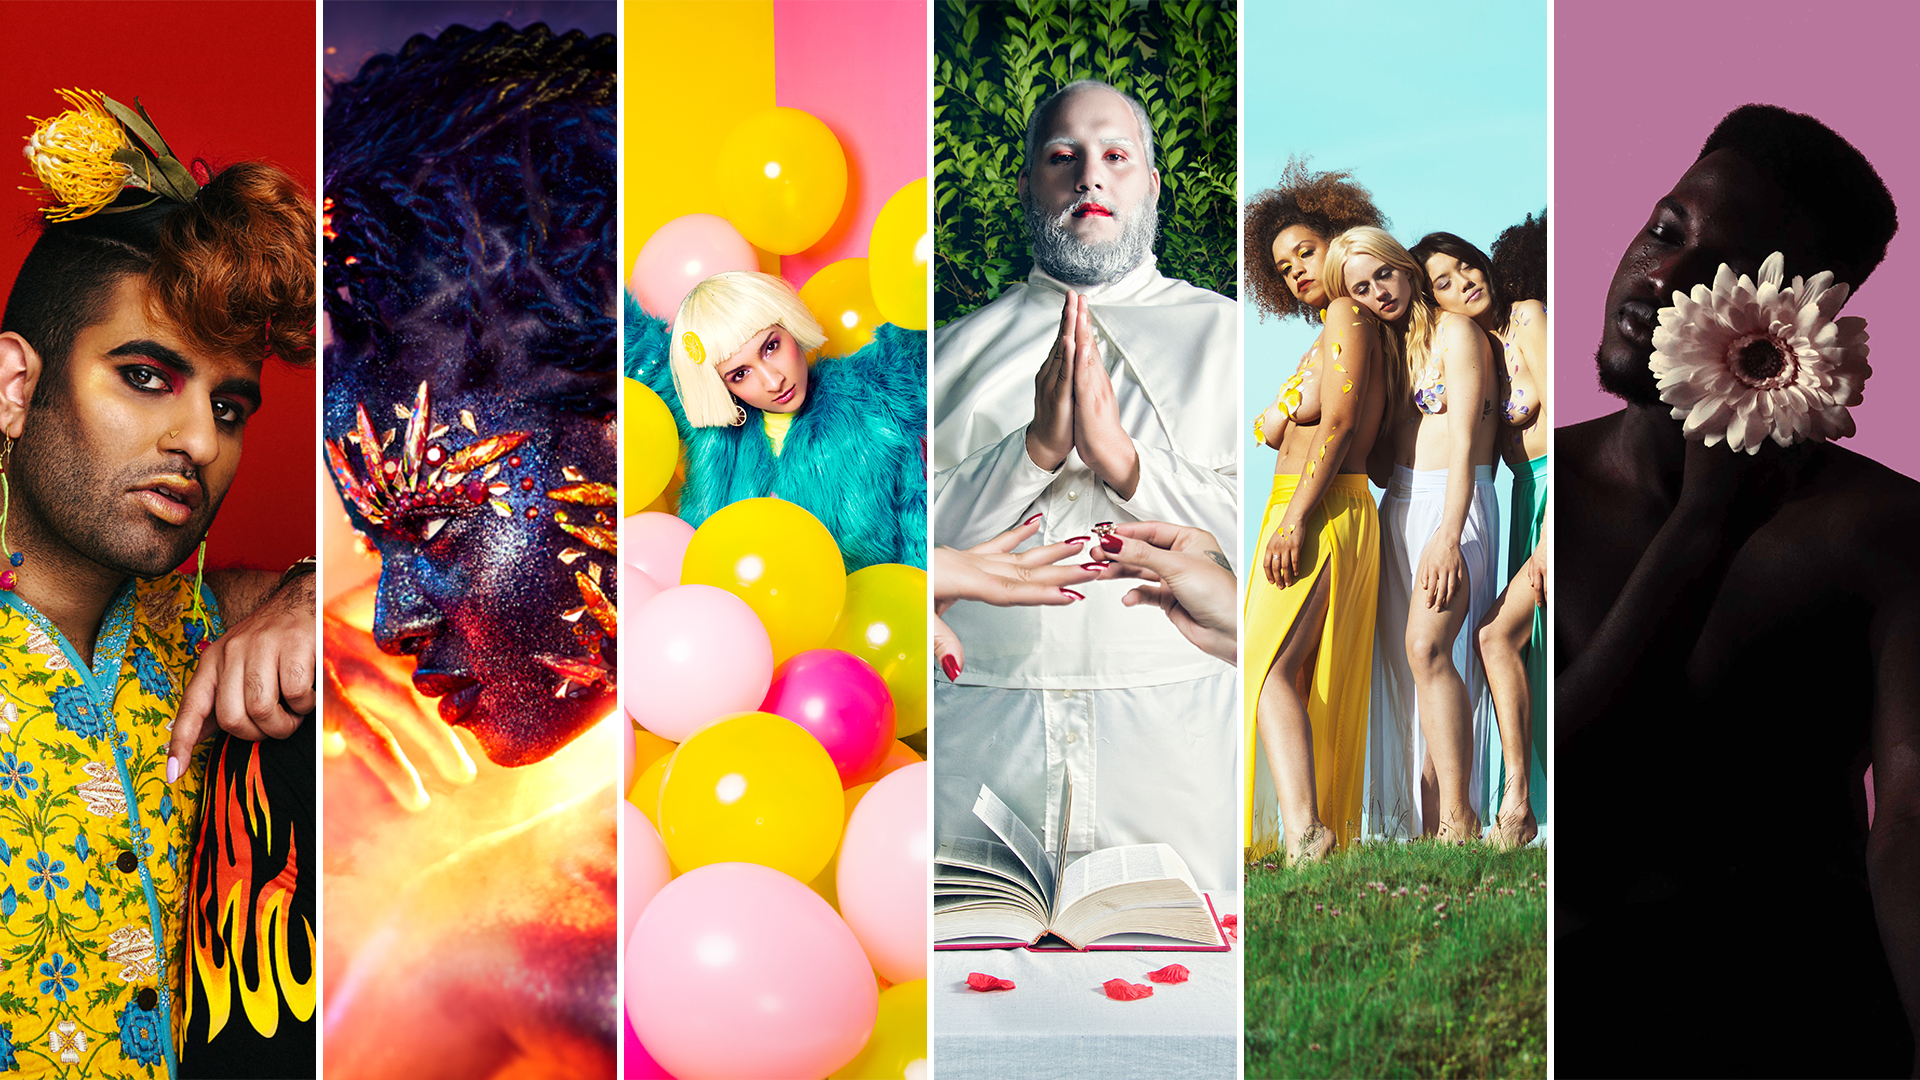 #ColorMeProud: 6 photographers show their Pride through photography